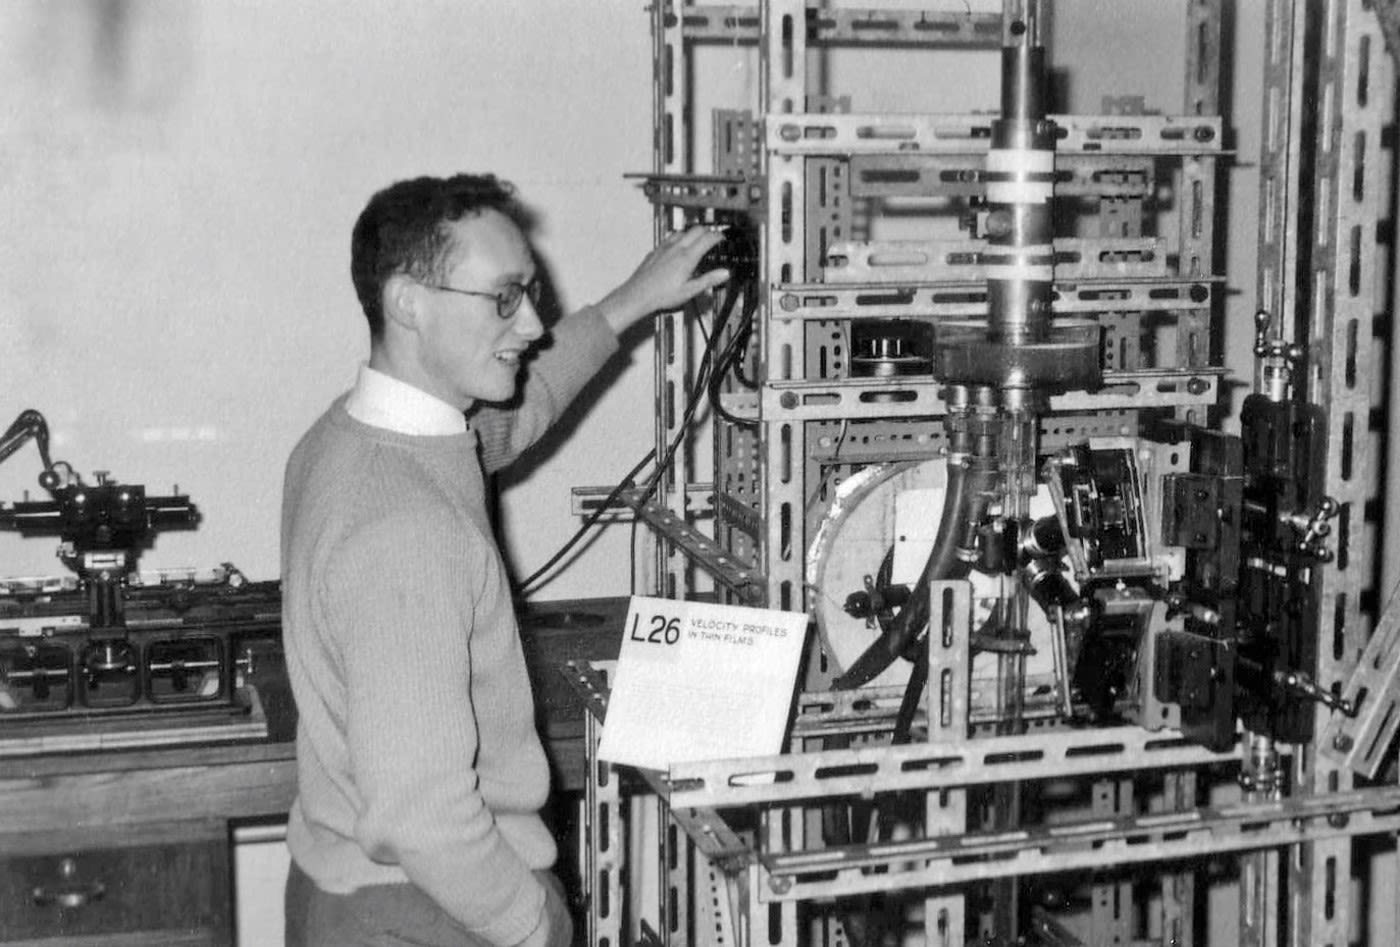 Ron Nedderman with his Stereoscopic Photographic Equipment in 1959